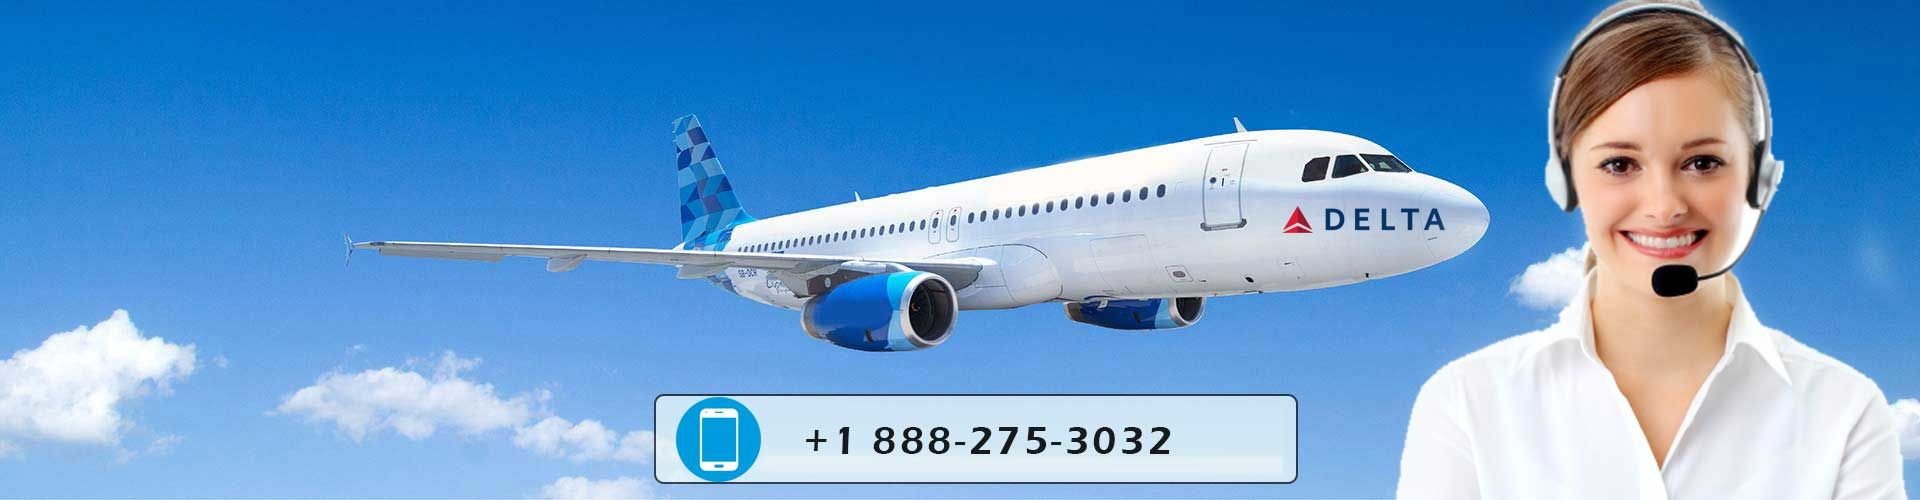 Delta Airlines Customer Service Phone Number